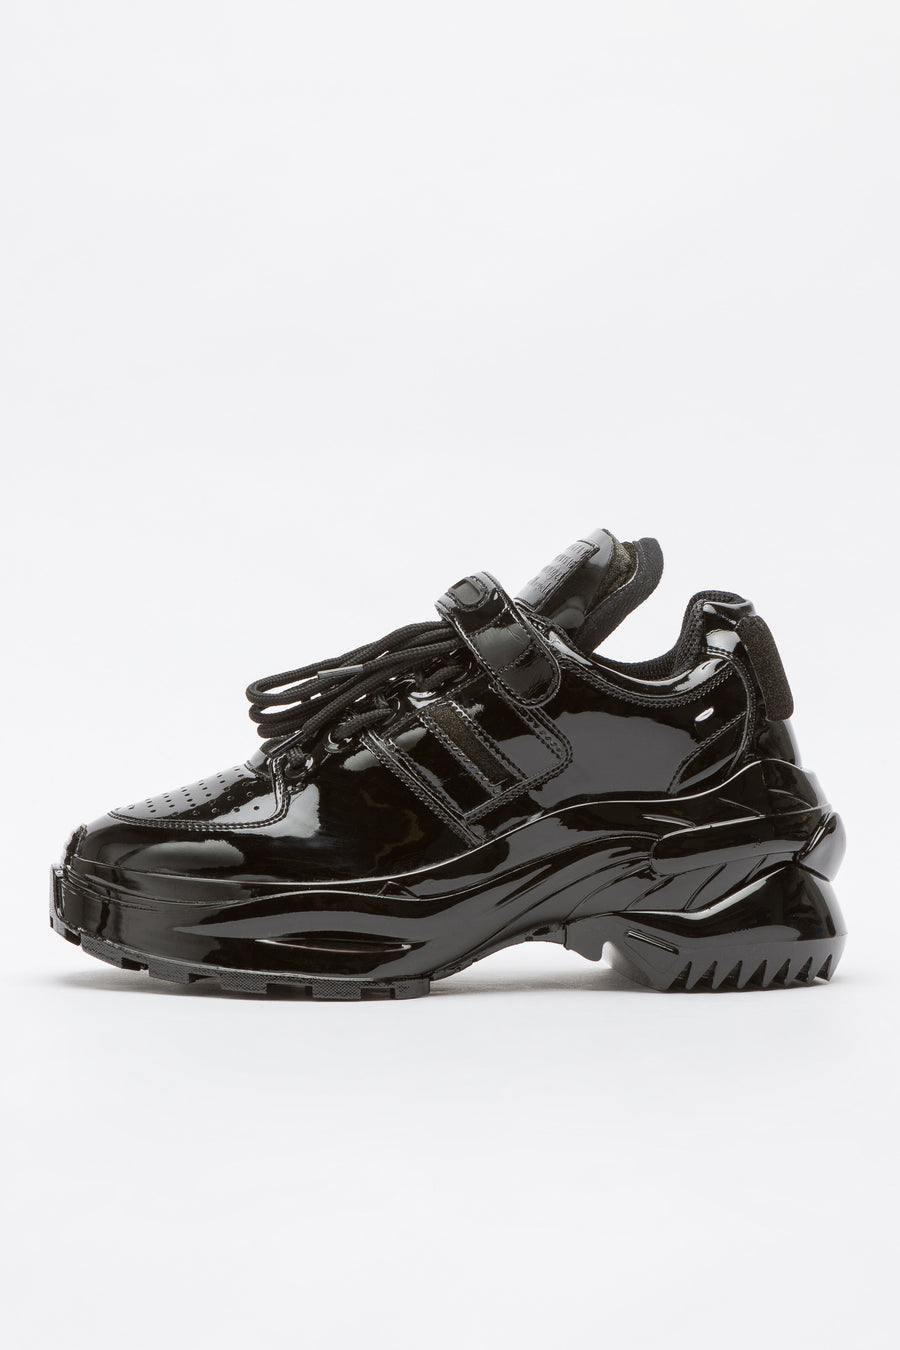 Maison Margiela Chunky Patent Leather Strap Sneaker in Black - Notre